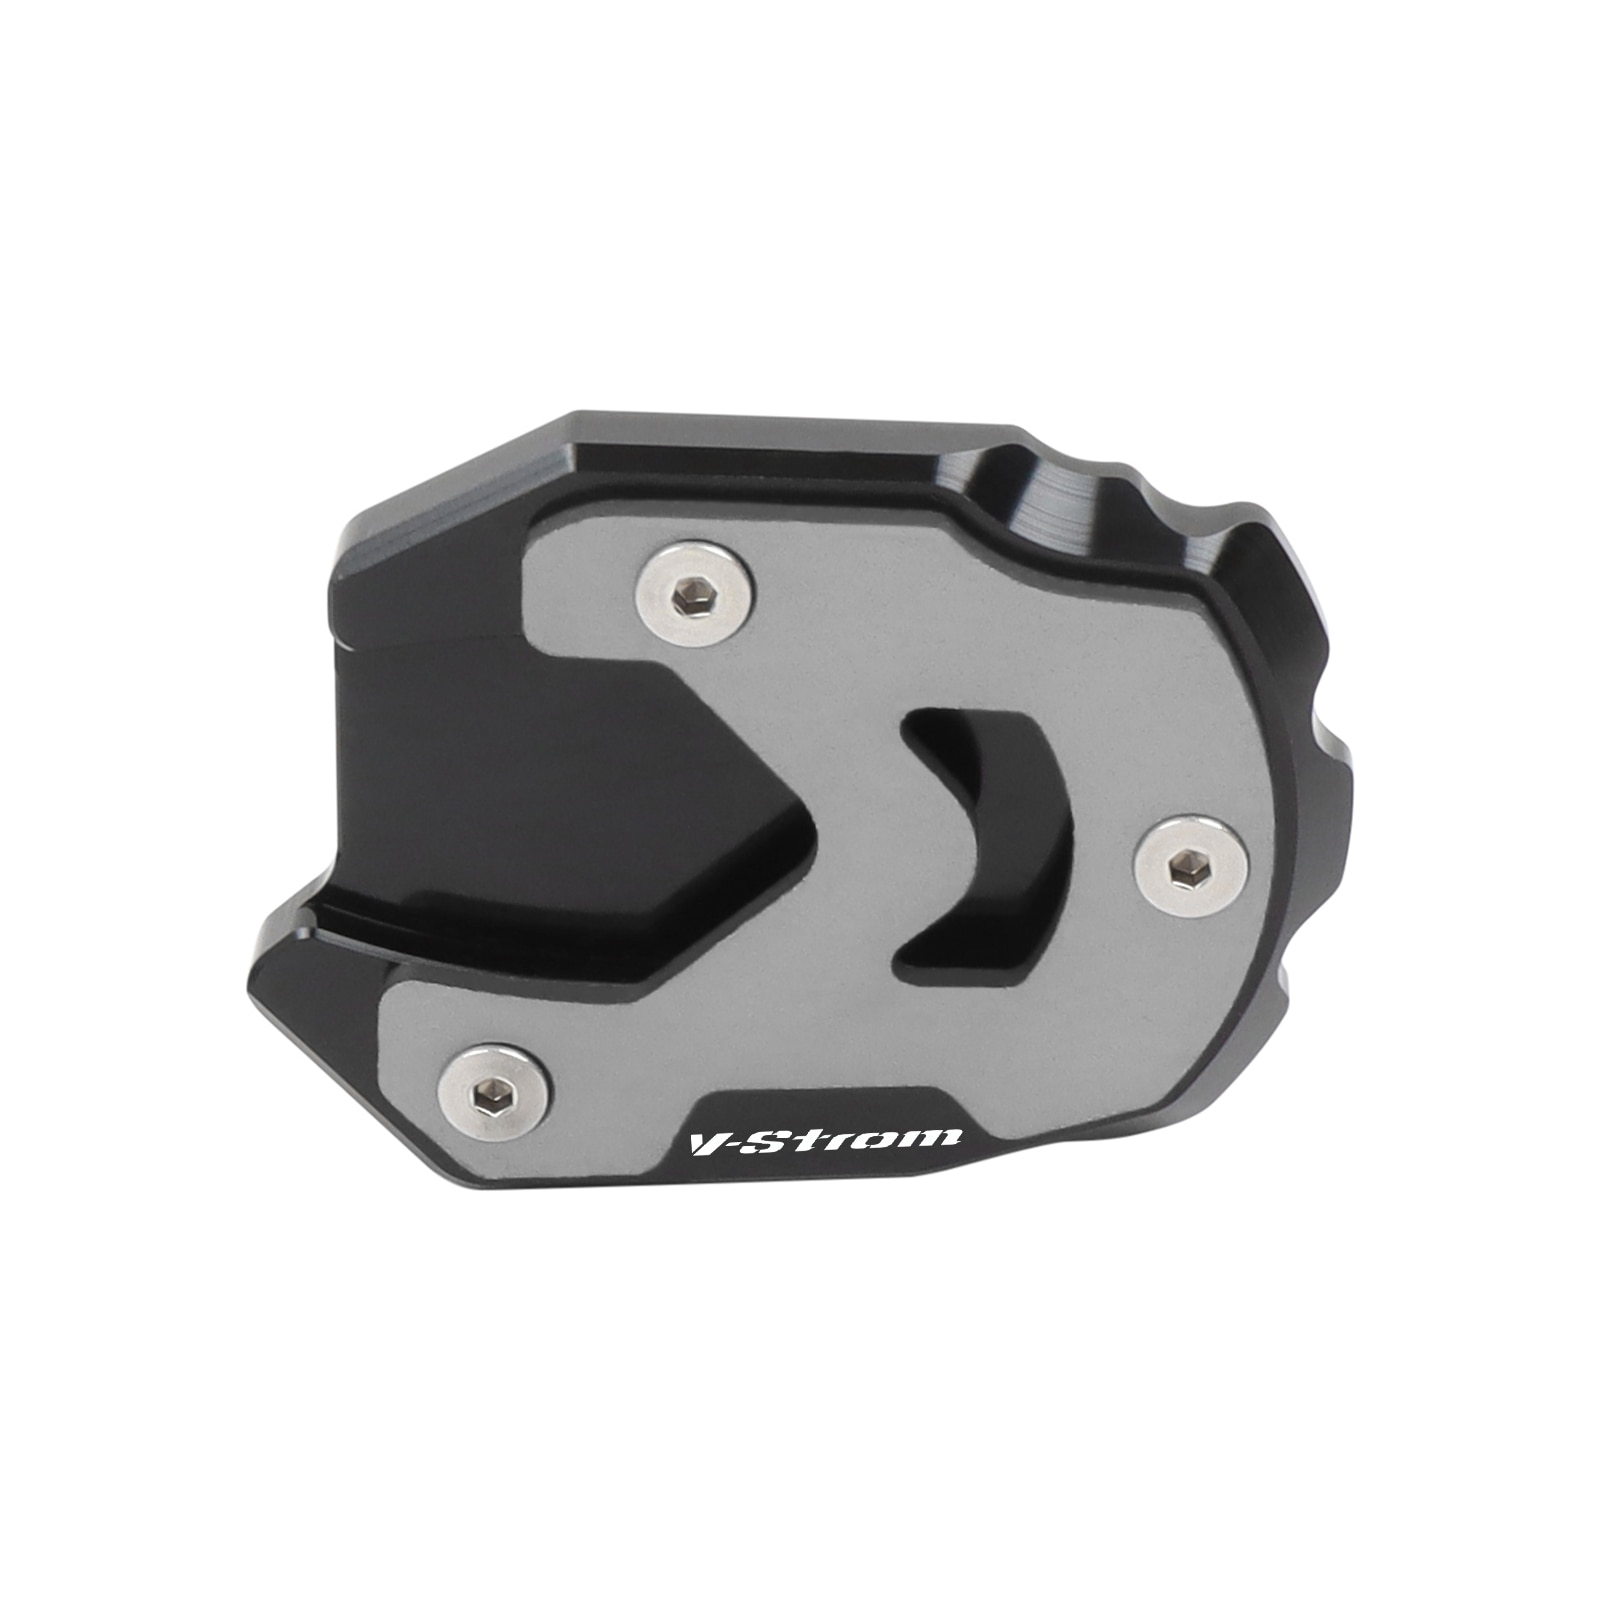 For Suzuki V-Strom 1050 DL1050XT 1000XT GSX-S 750 1000S/1000F GSR 750 CNC Foot Side Stand Enlarger Kickstand Plate Pad Extension